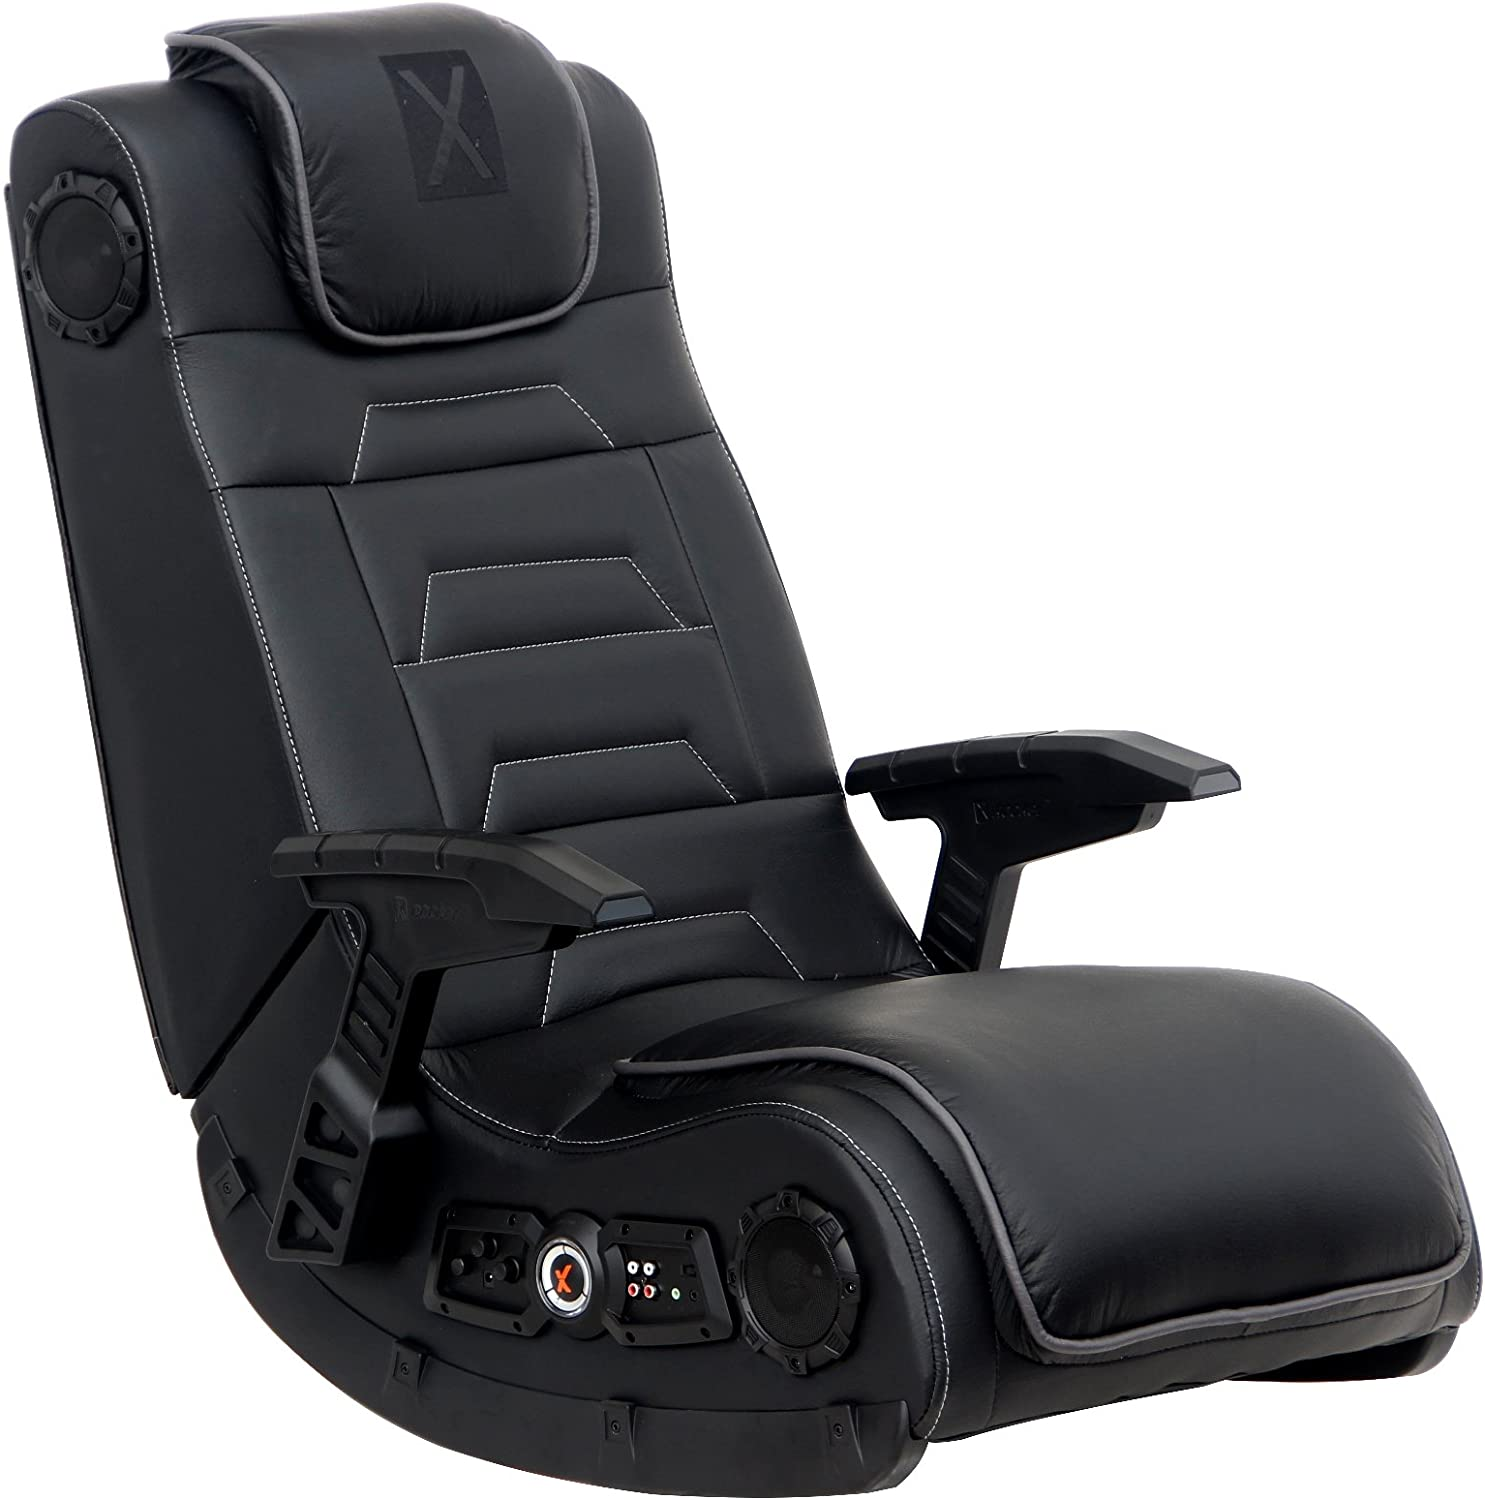 X Rocker Gaming Chair, Durable Wood and metal frame covered